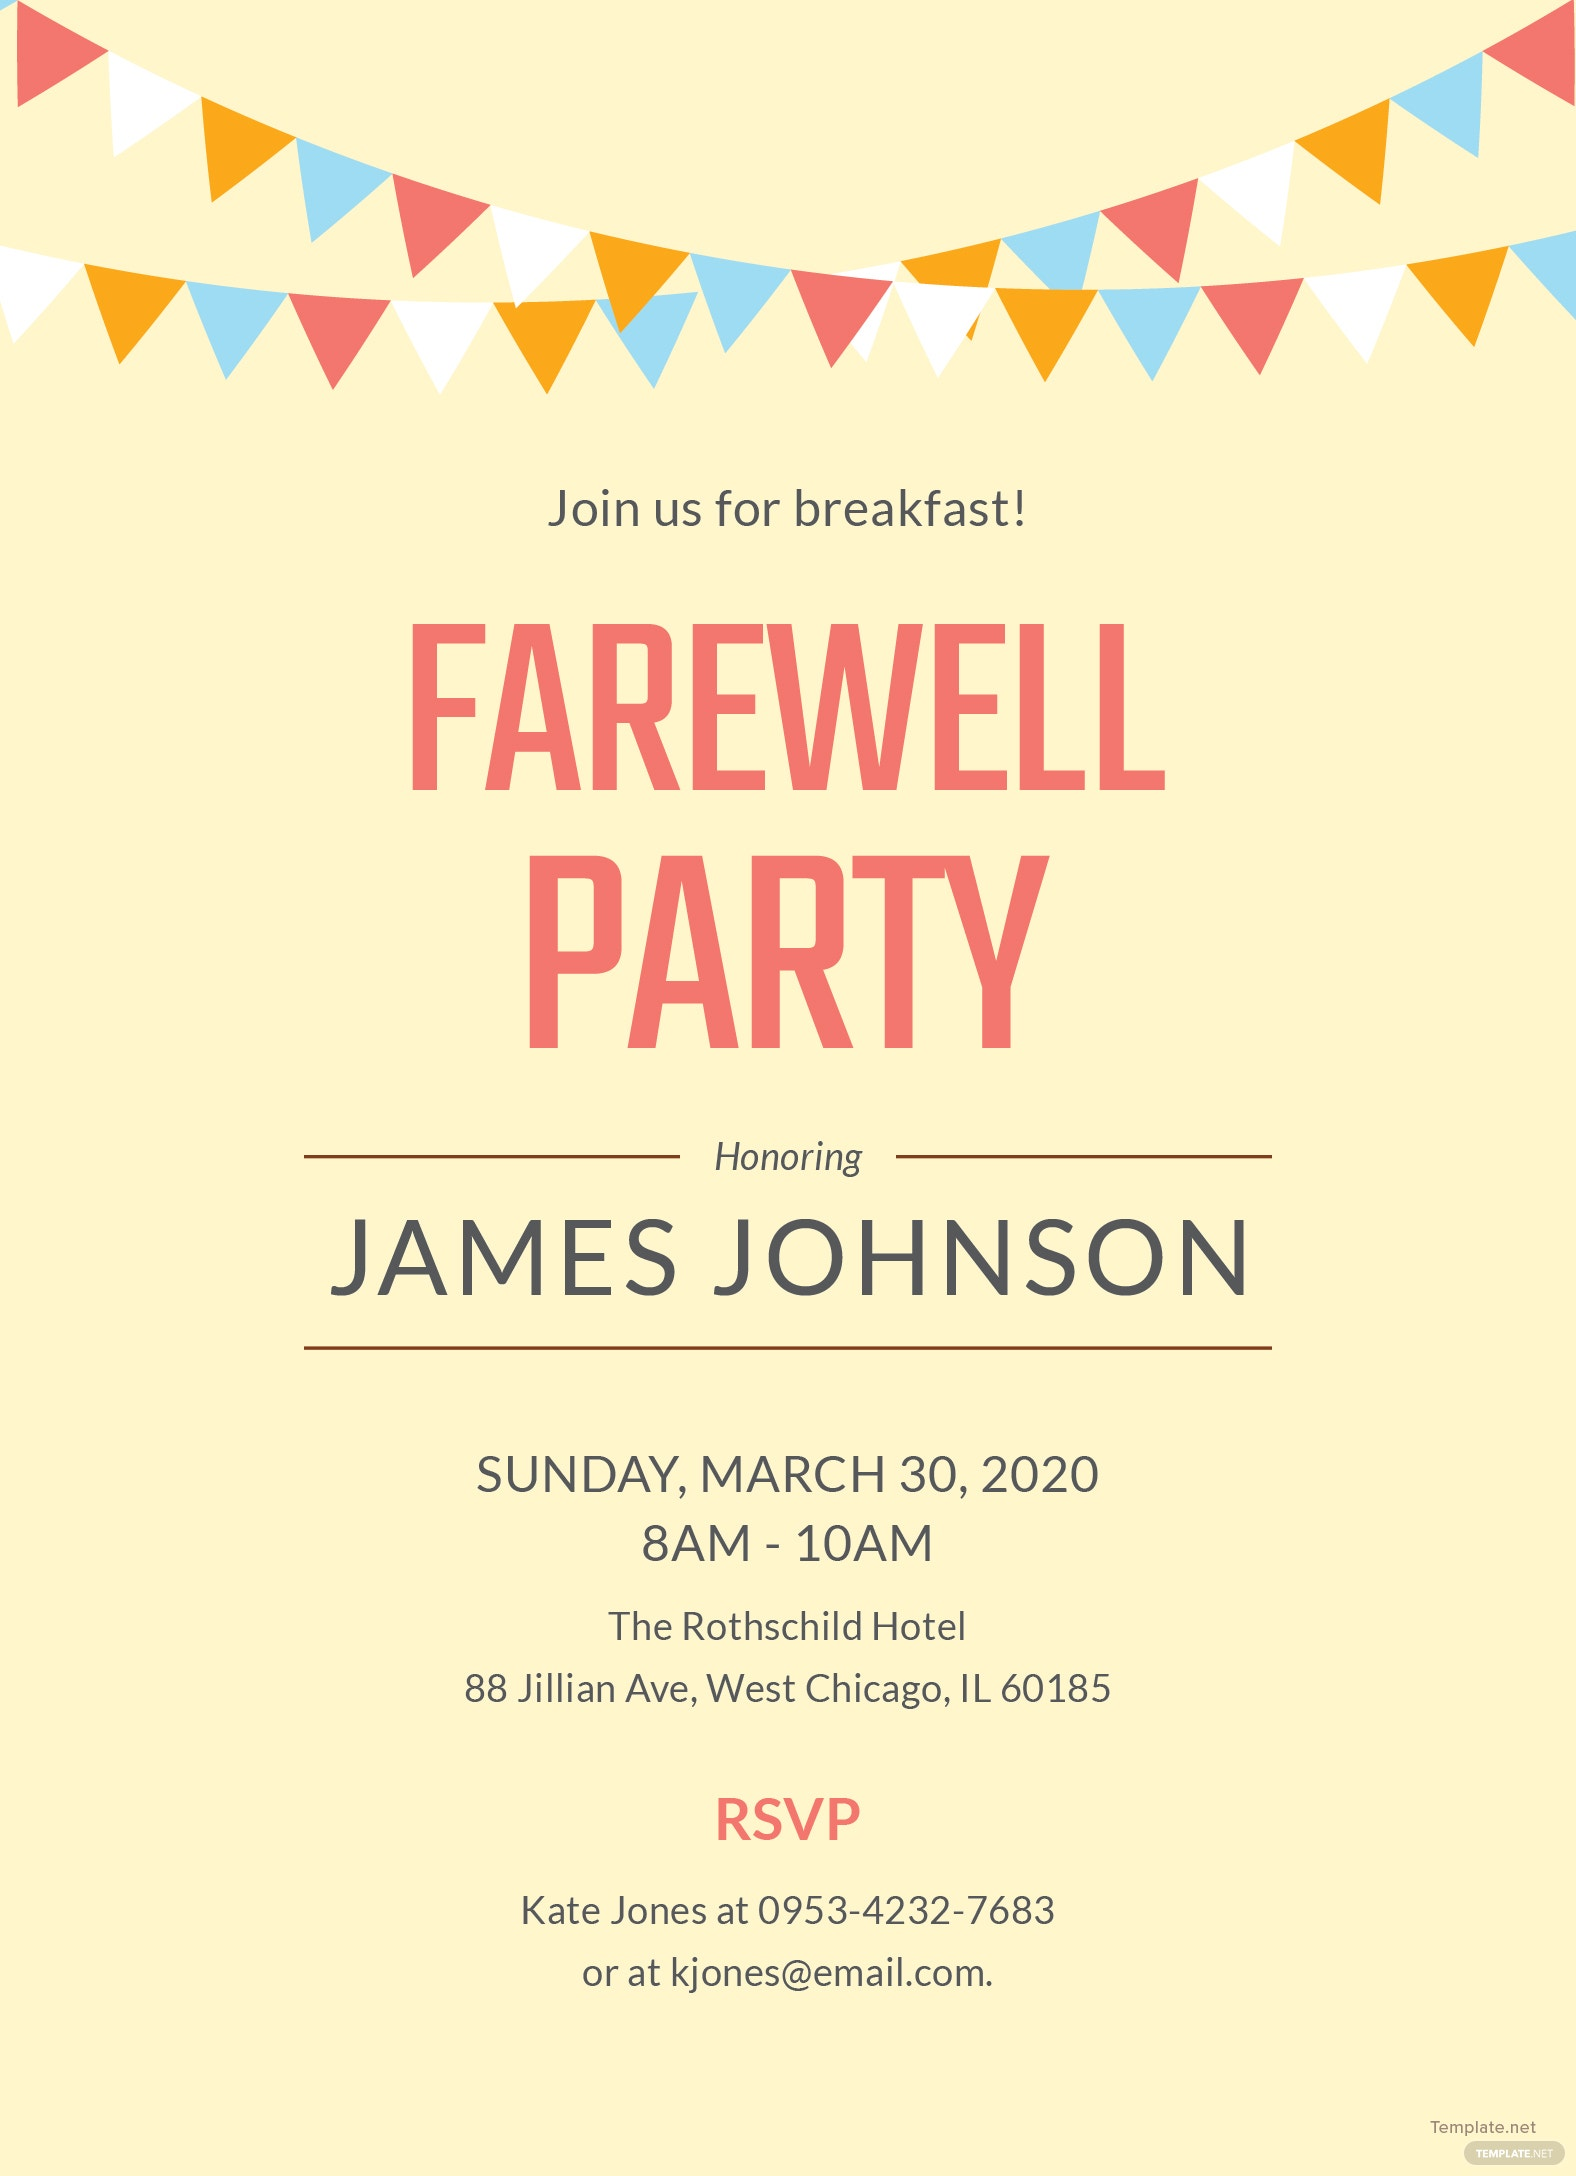 farewell breakfast party invitation template in adobe